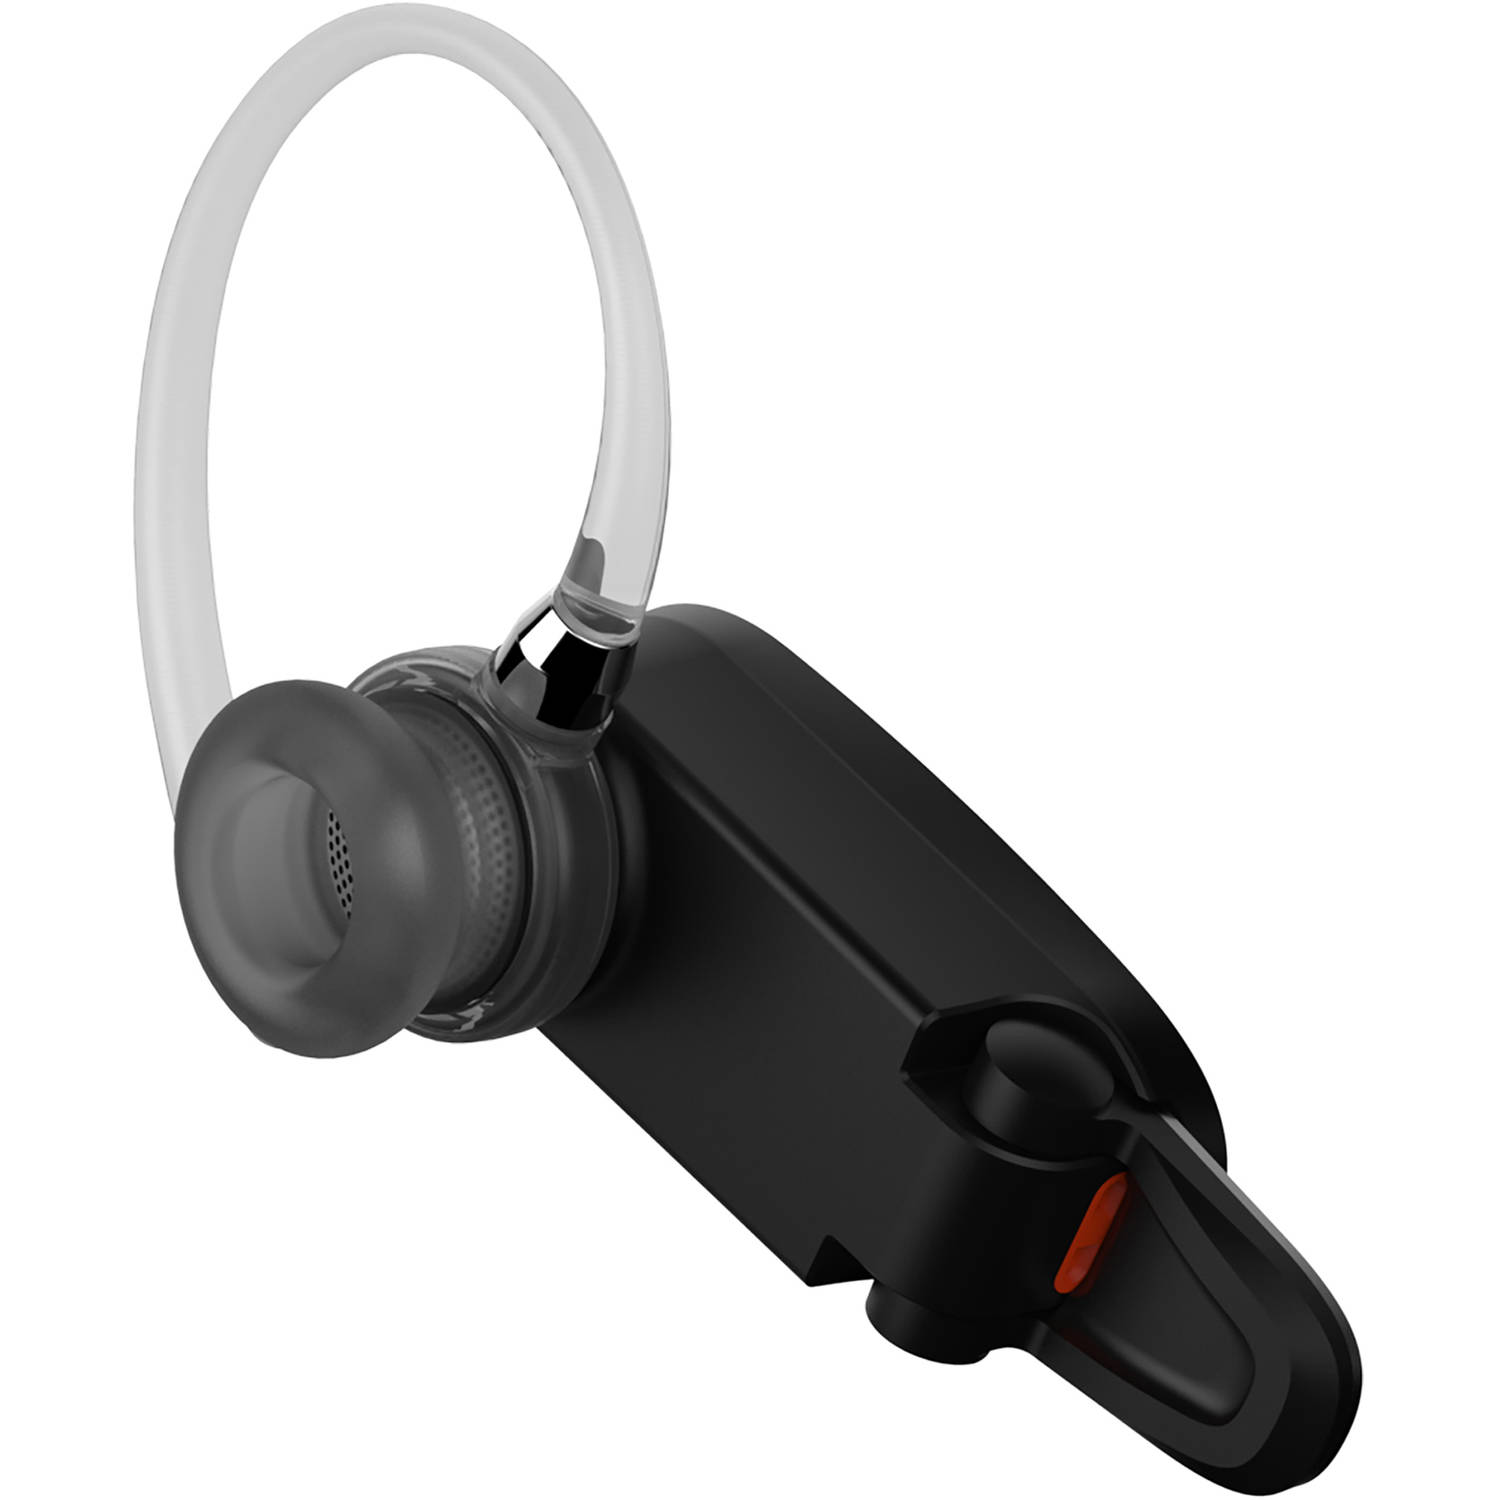 66ed14a8838 Boom 2 Wireless Headset - Walmart.com